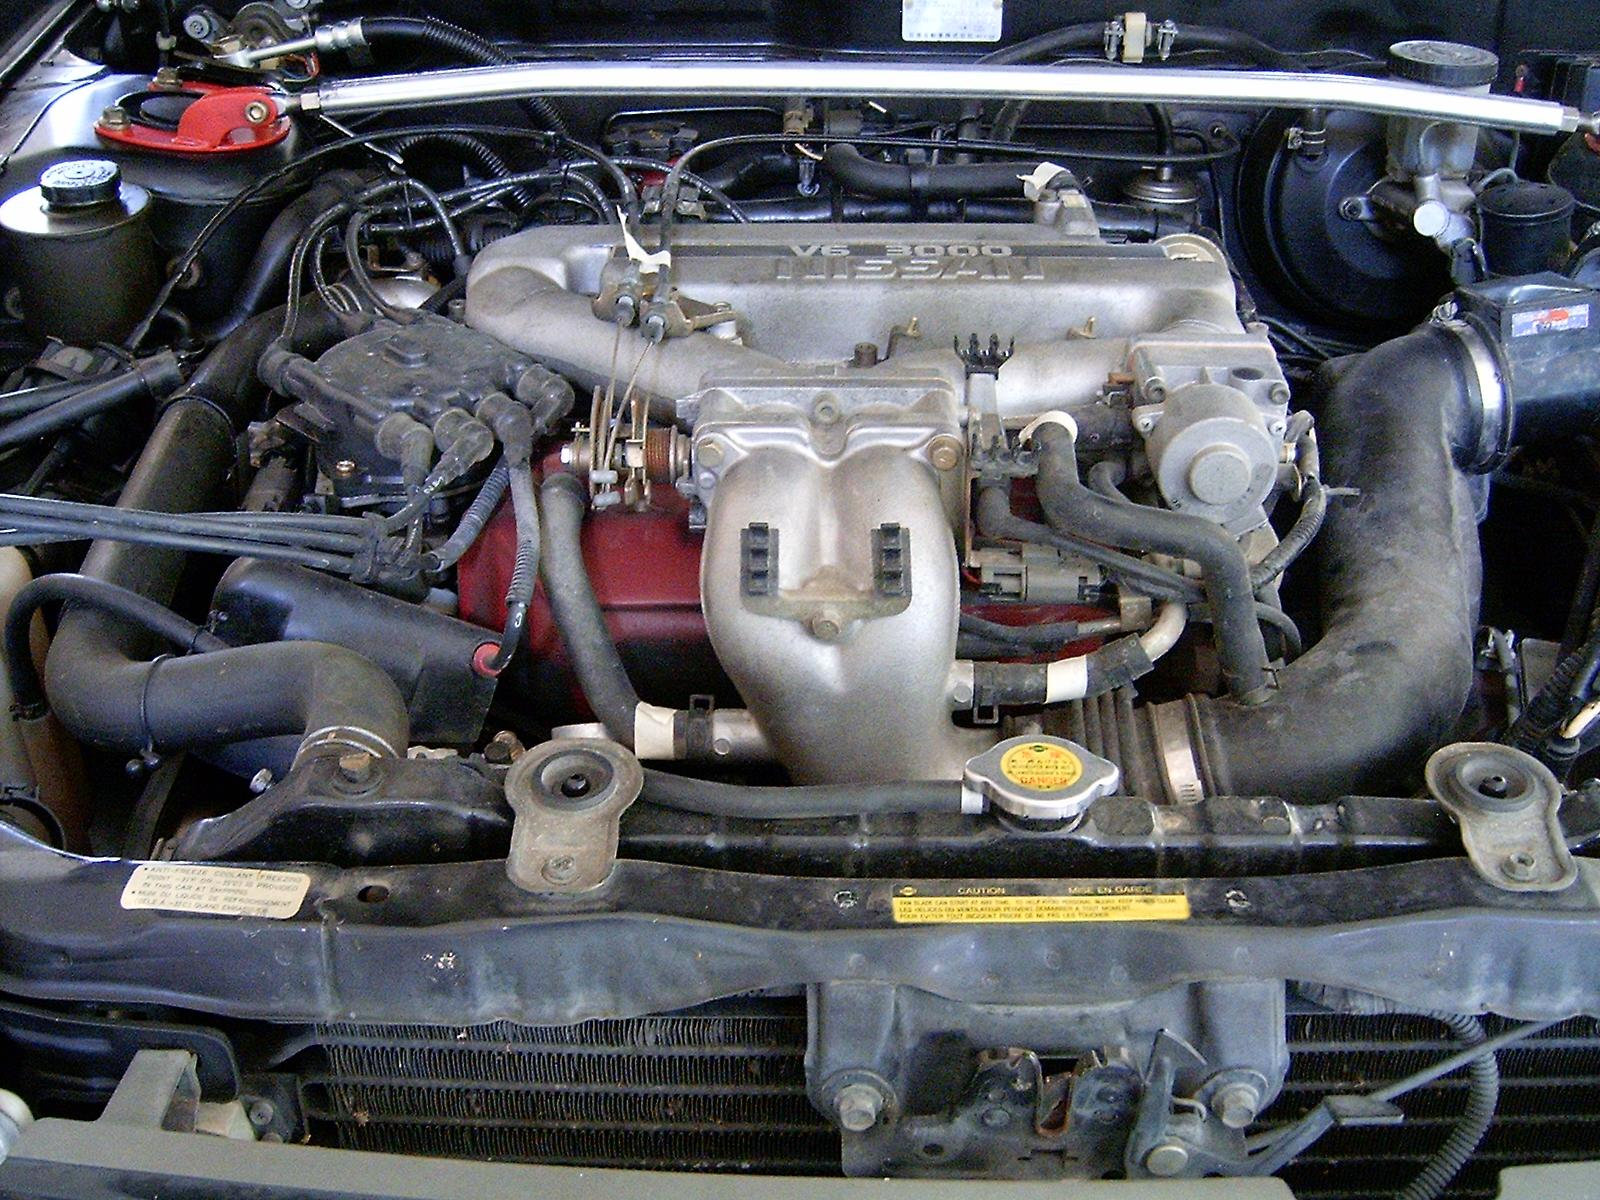 91 Nissan Maxima Engine Diagrams Wiring 2004 Diagram 1991 Information And Photos Zombiedrive Rh Zombdrive Com 35 04